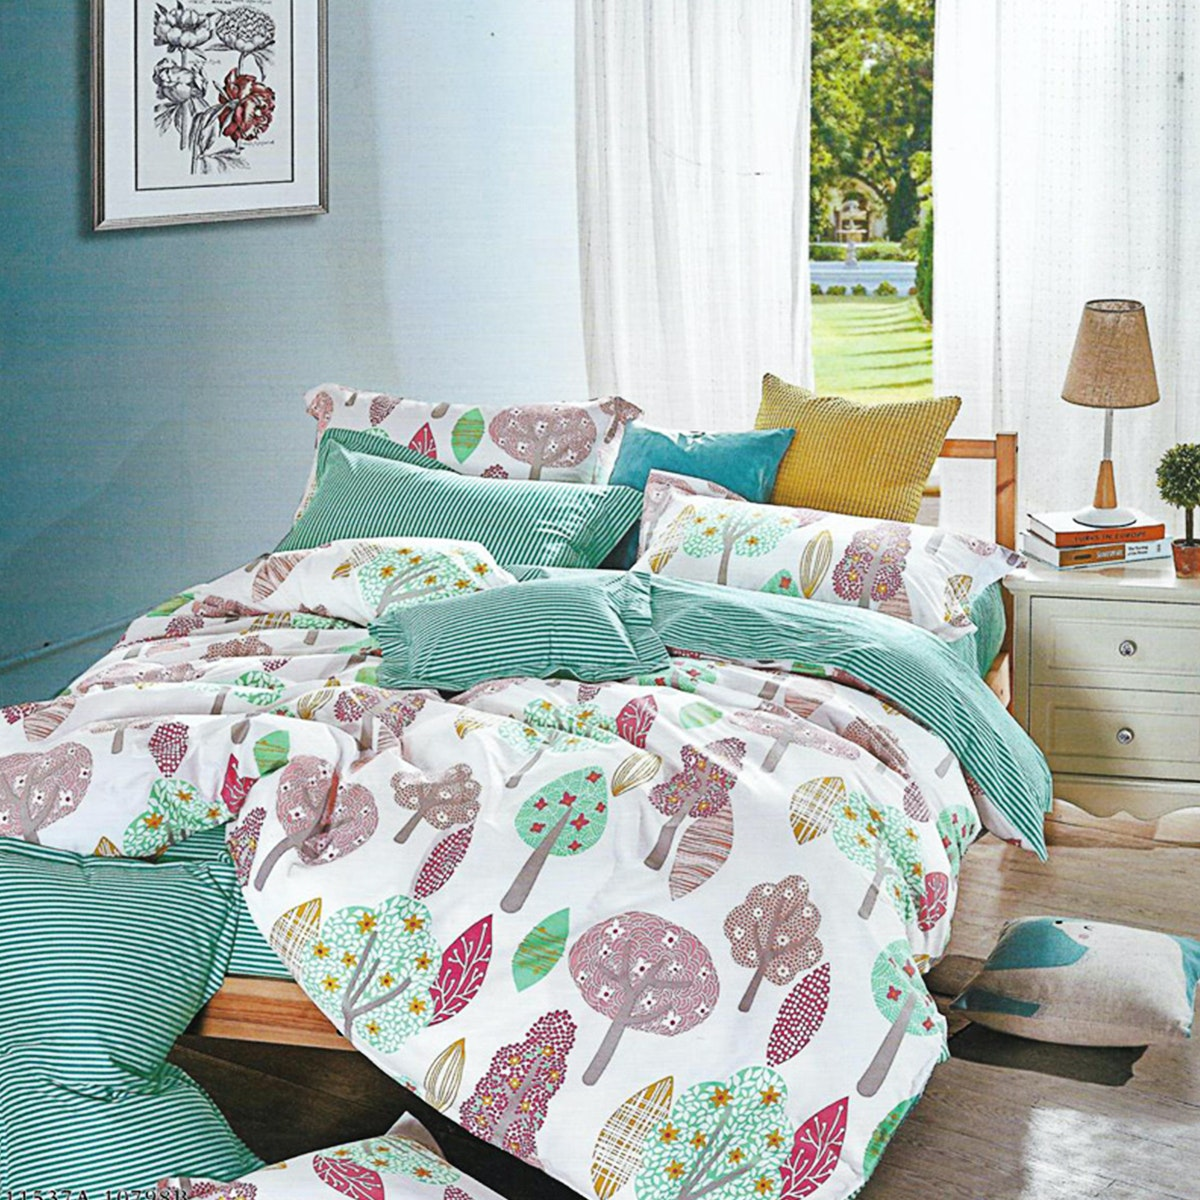 Sleep Buddy Set Sprei Greeny Garden Cotton Sateen 180x200x30